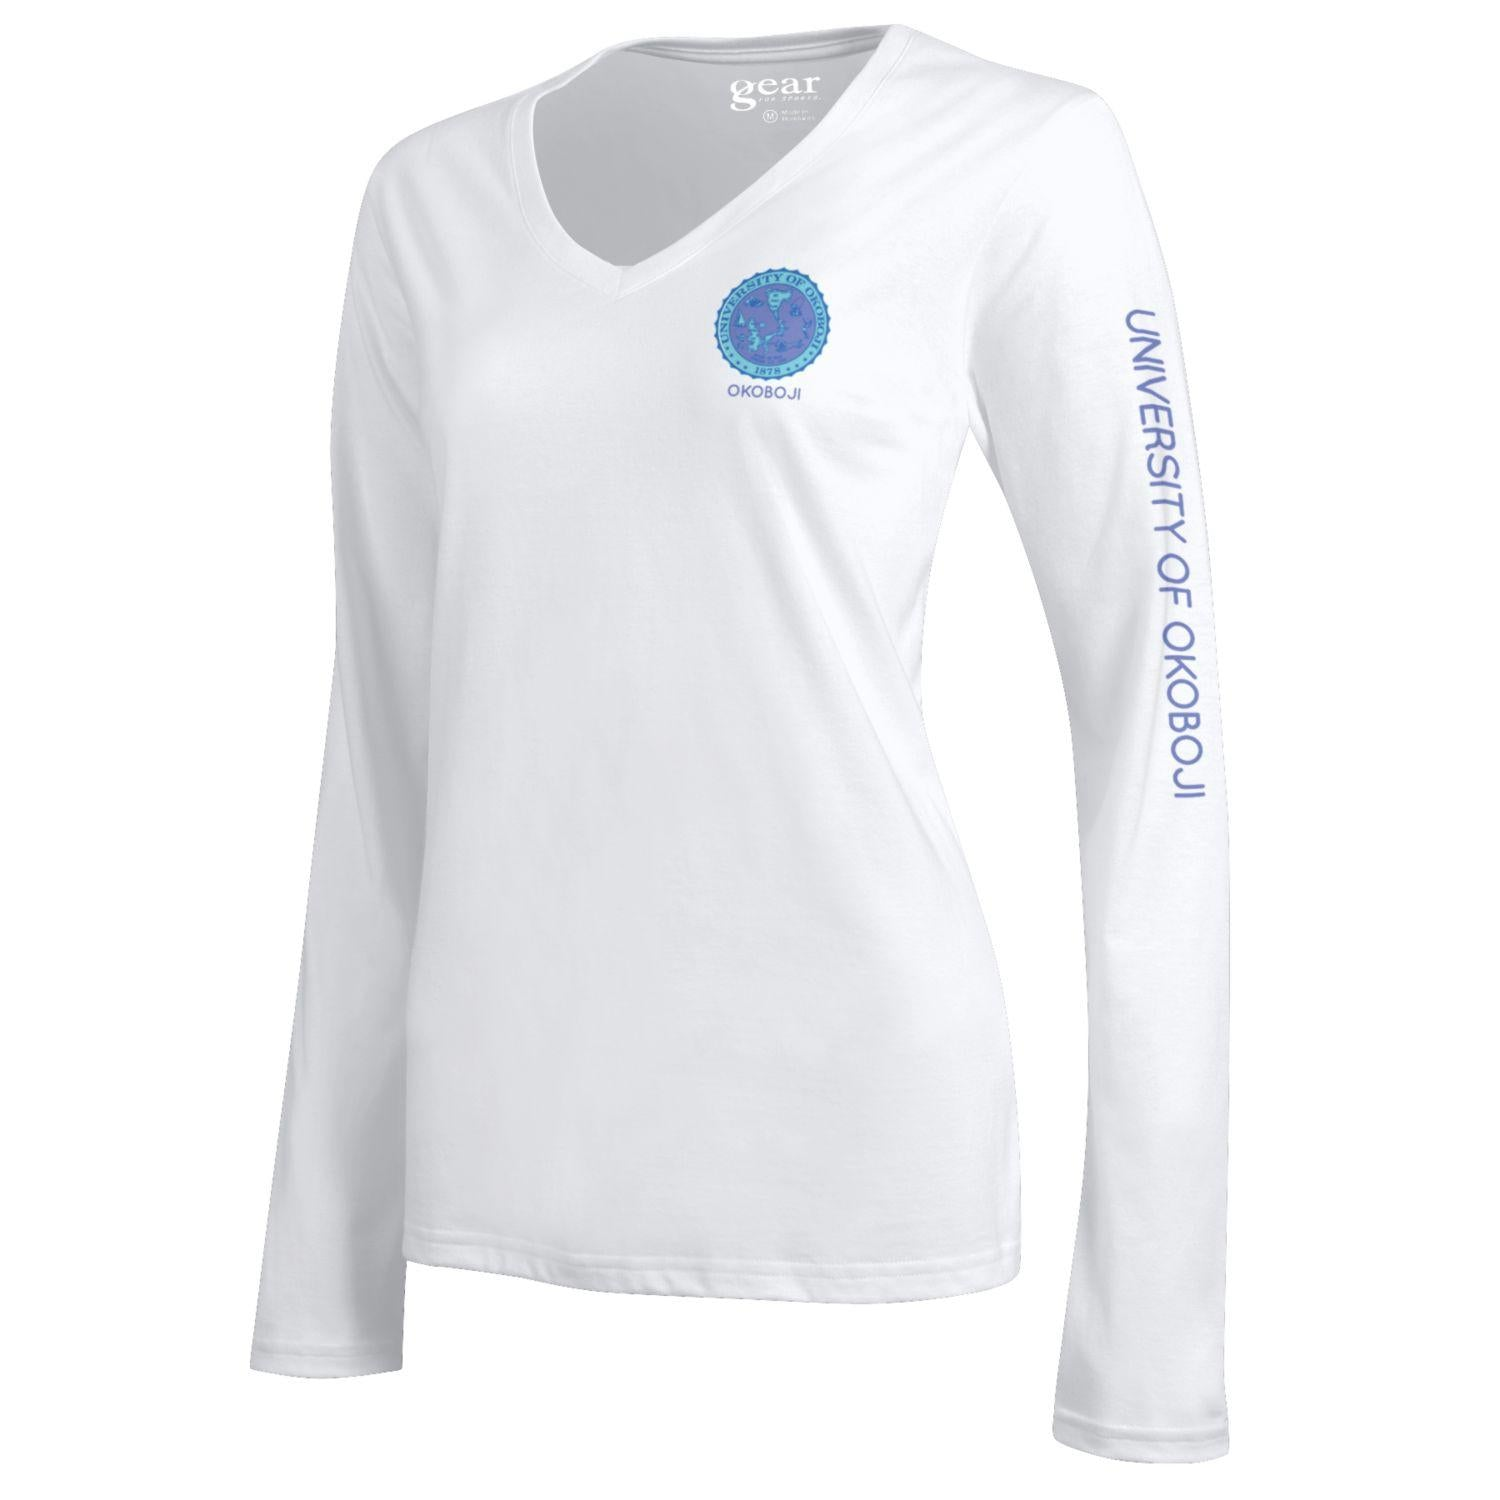 Women's Classic Long Sleeve-G7327 White 000